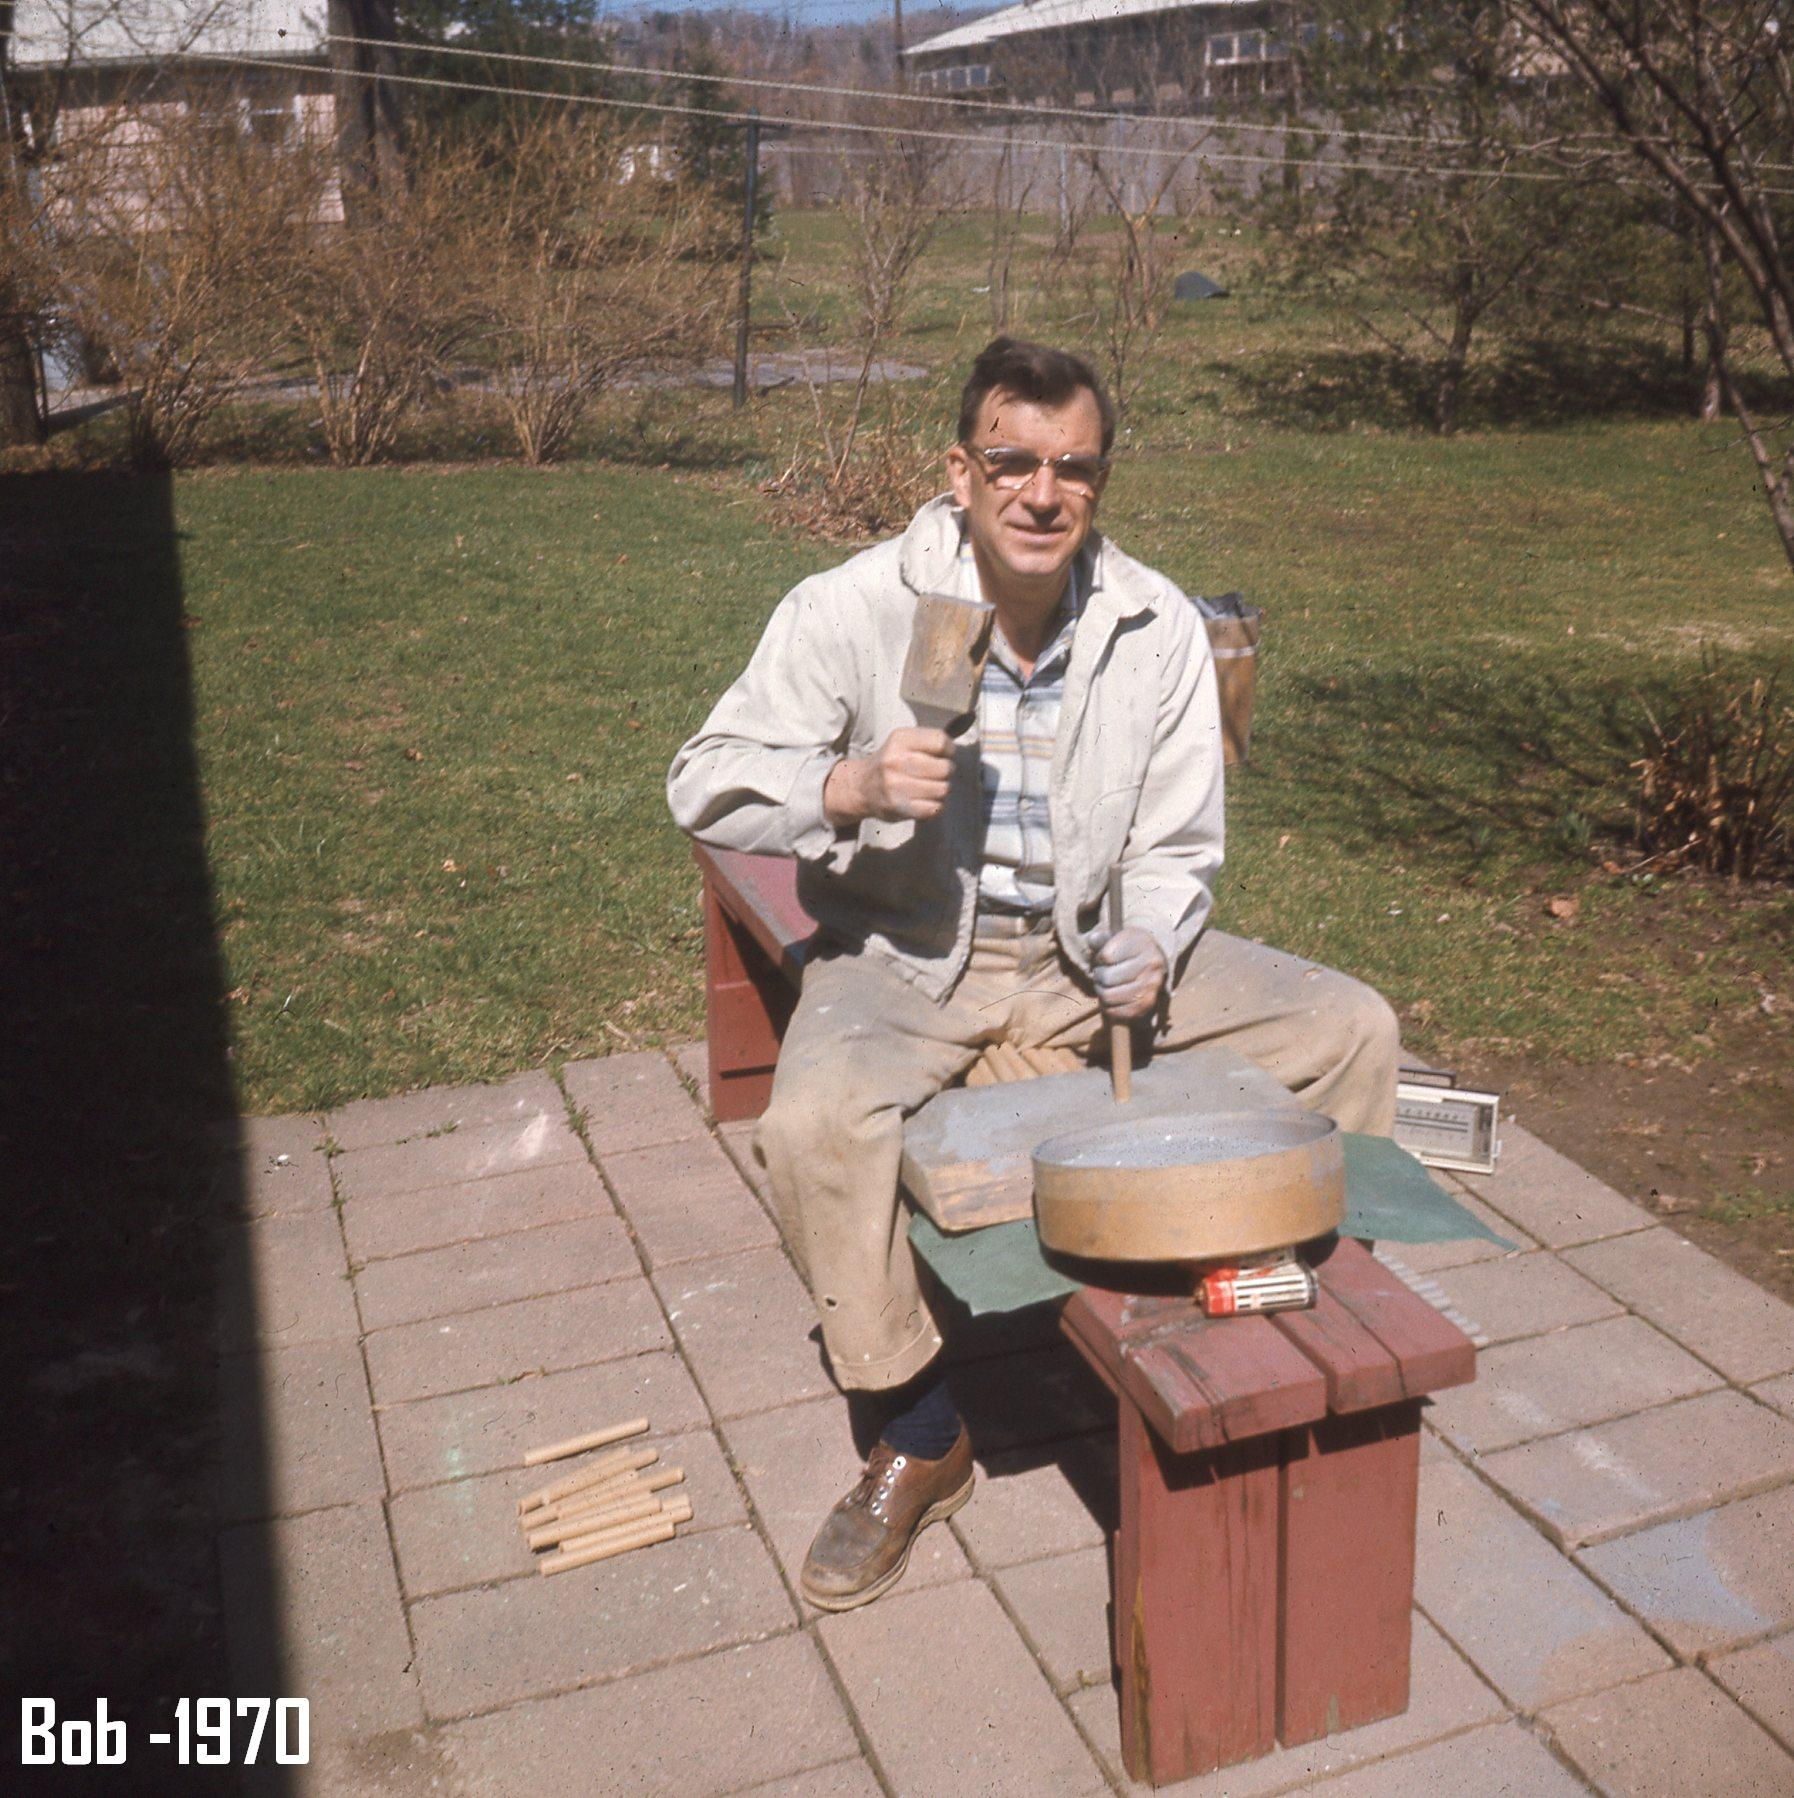 robert young holding tools assembling fireworks in yard